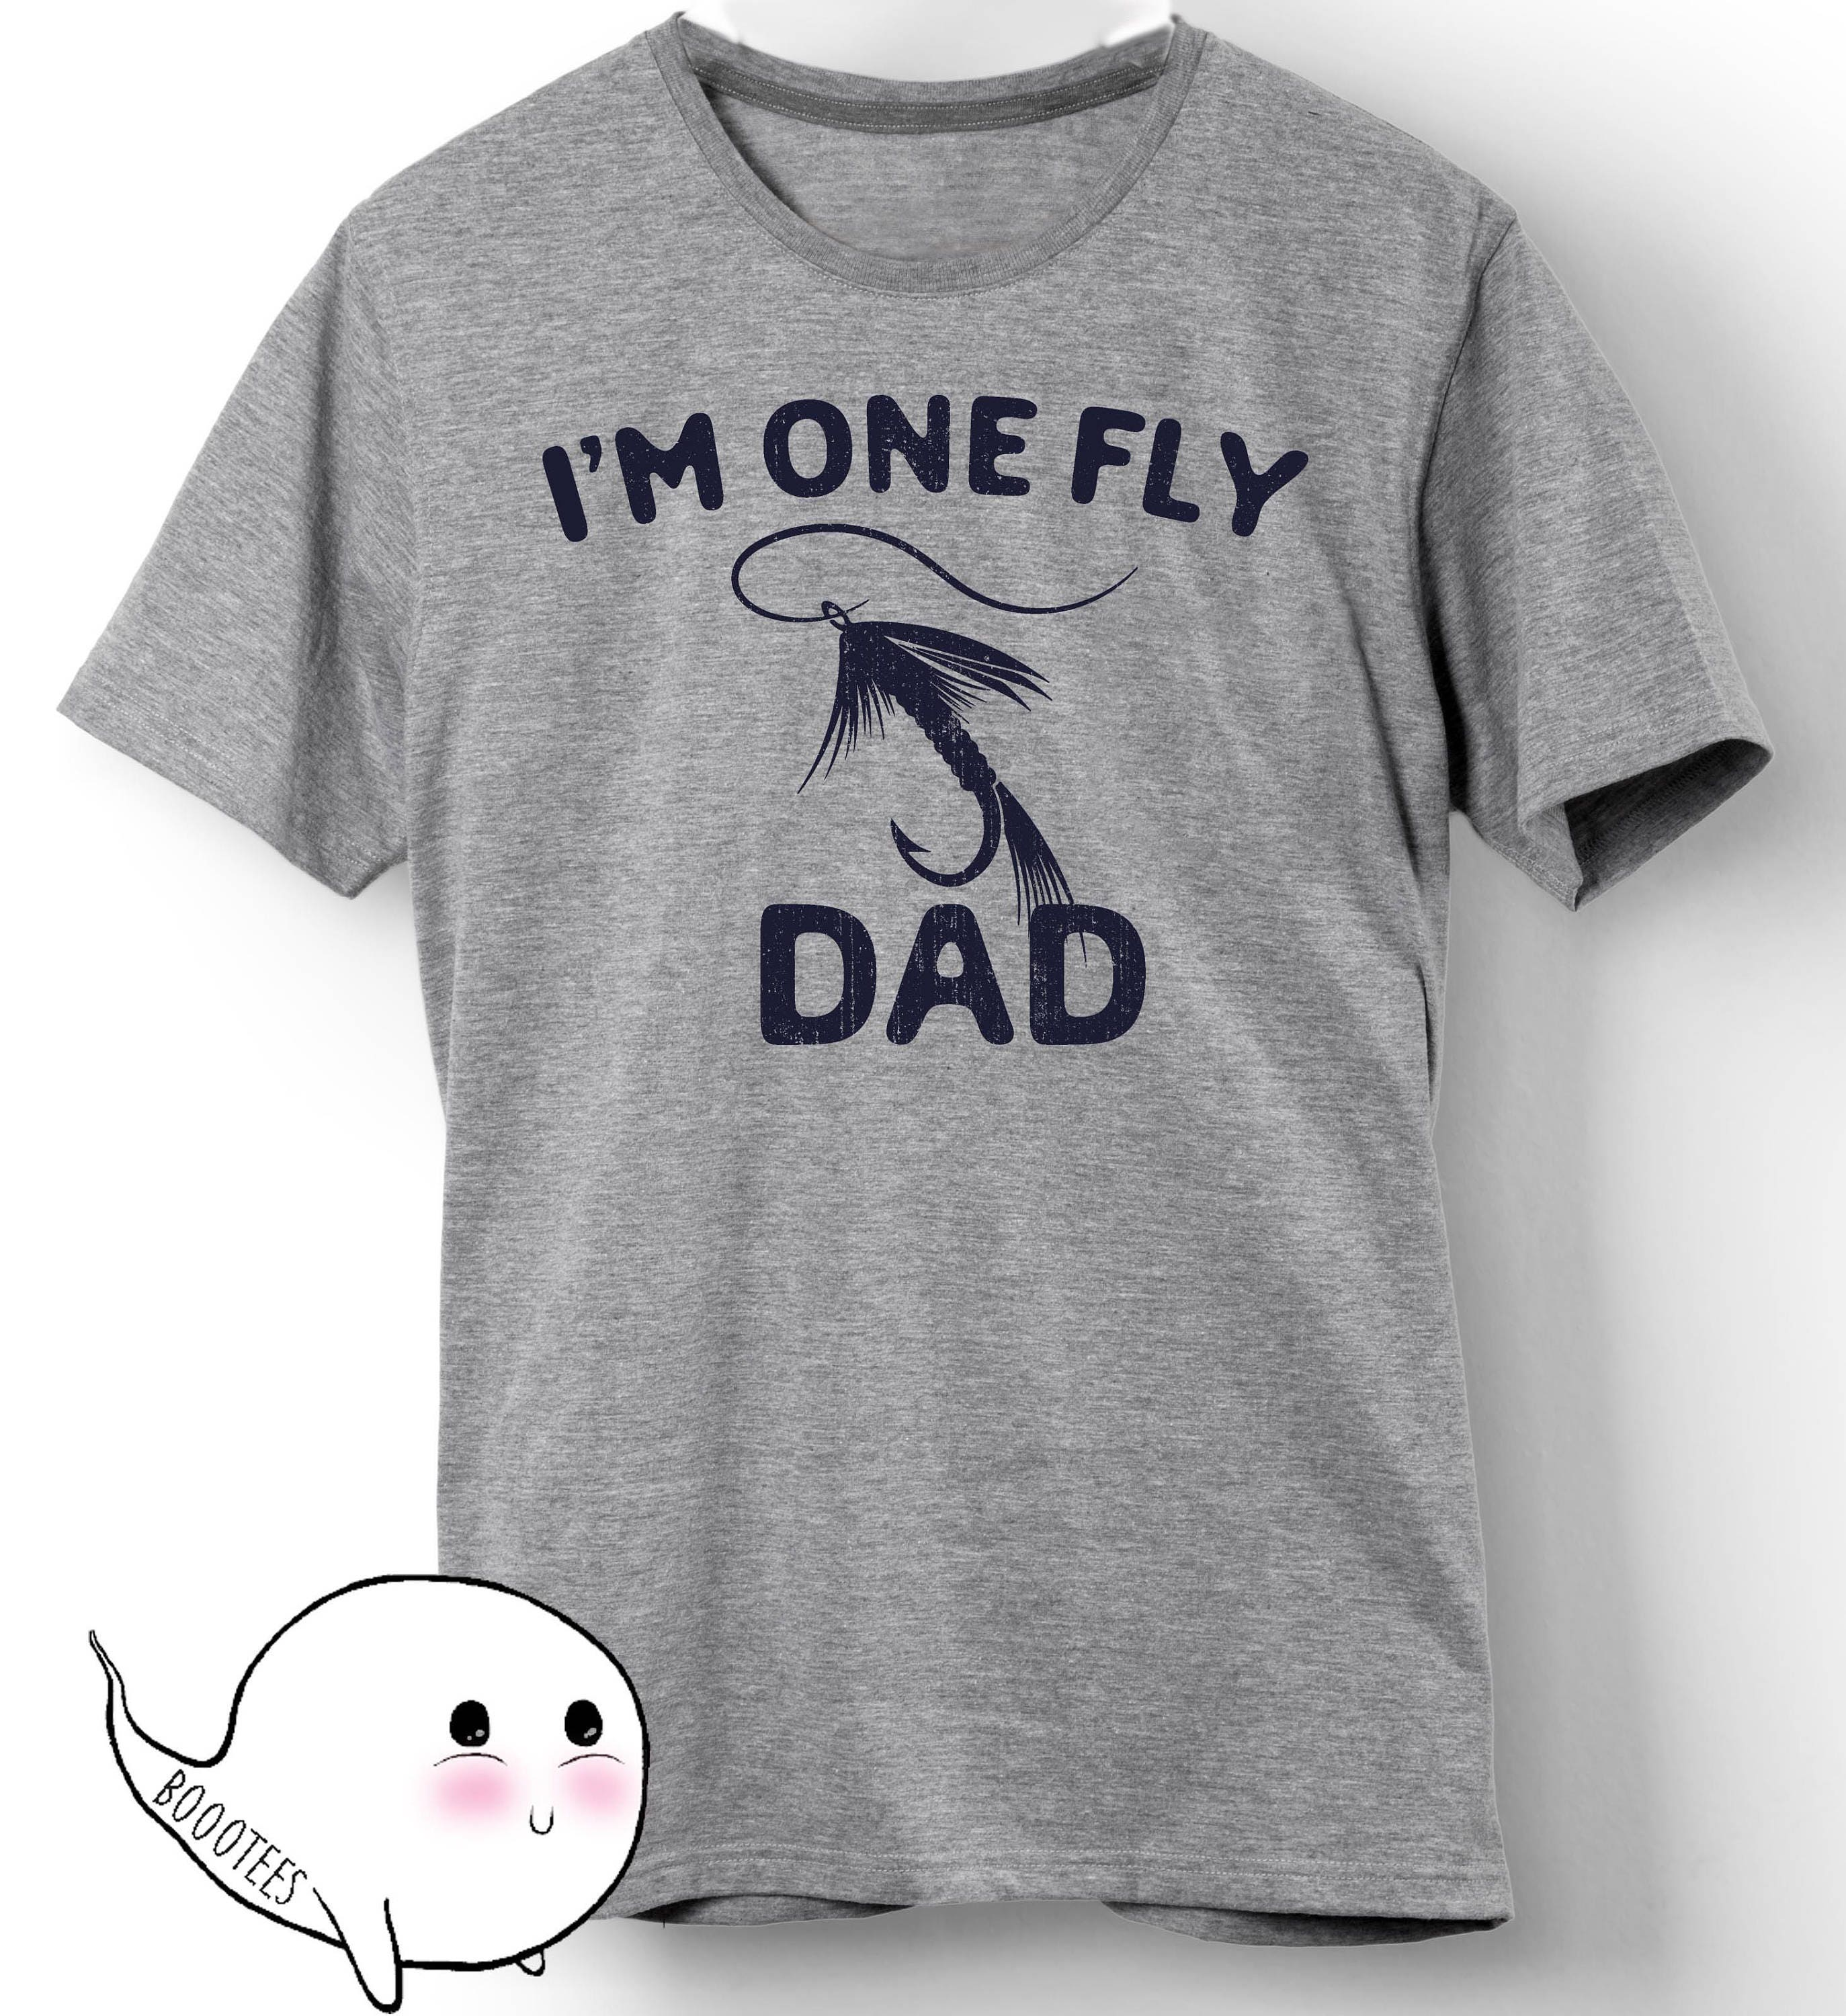 Fishing gift for dad christmas shirt funny fishing t shirt for Fishing gifts for dad